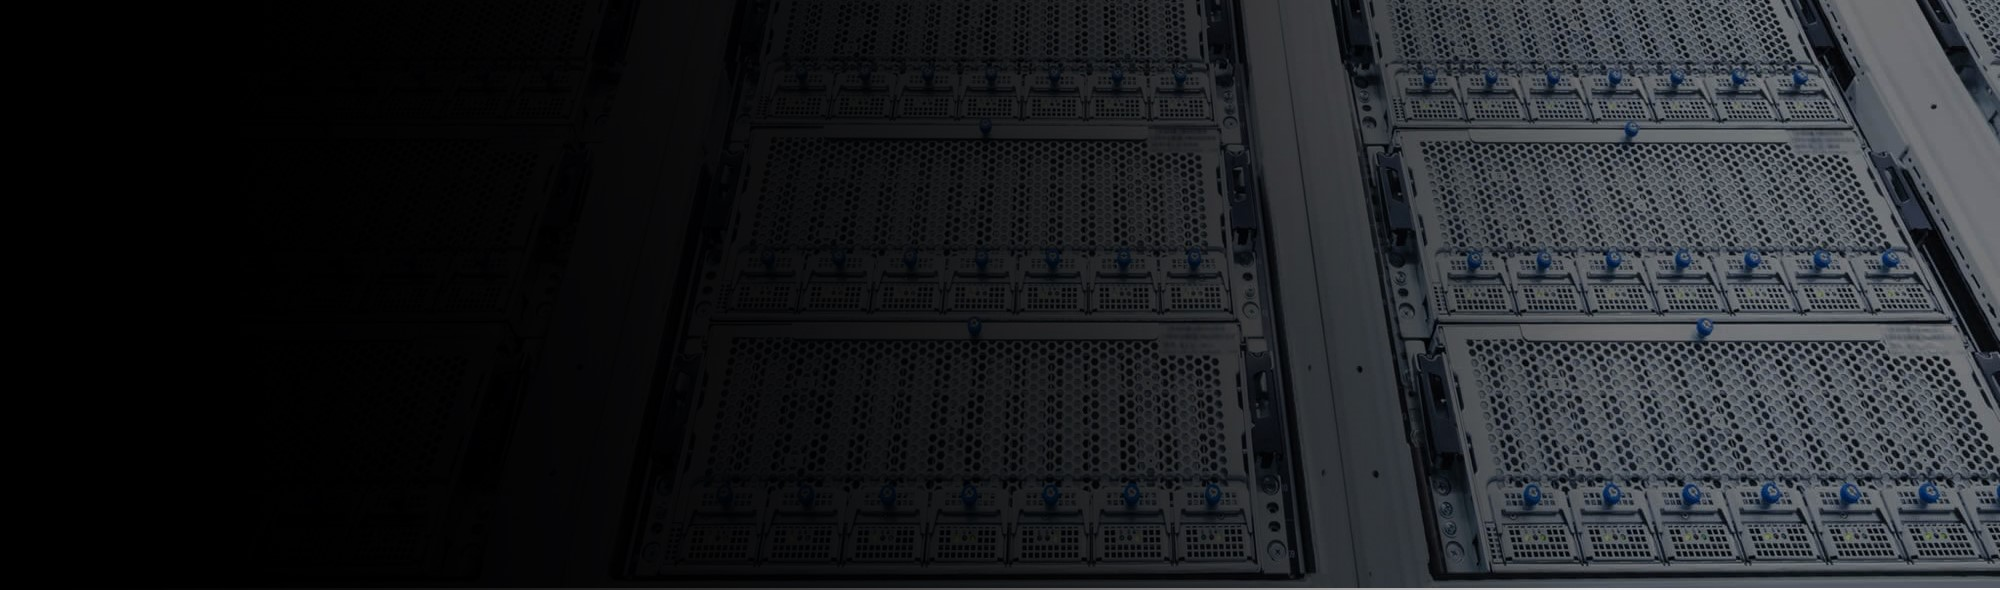 Image of datacenter racks